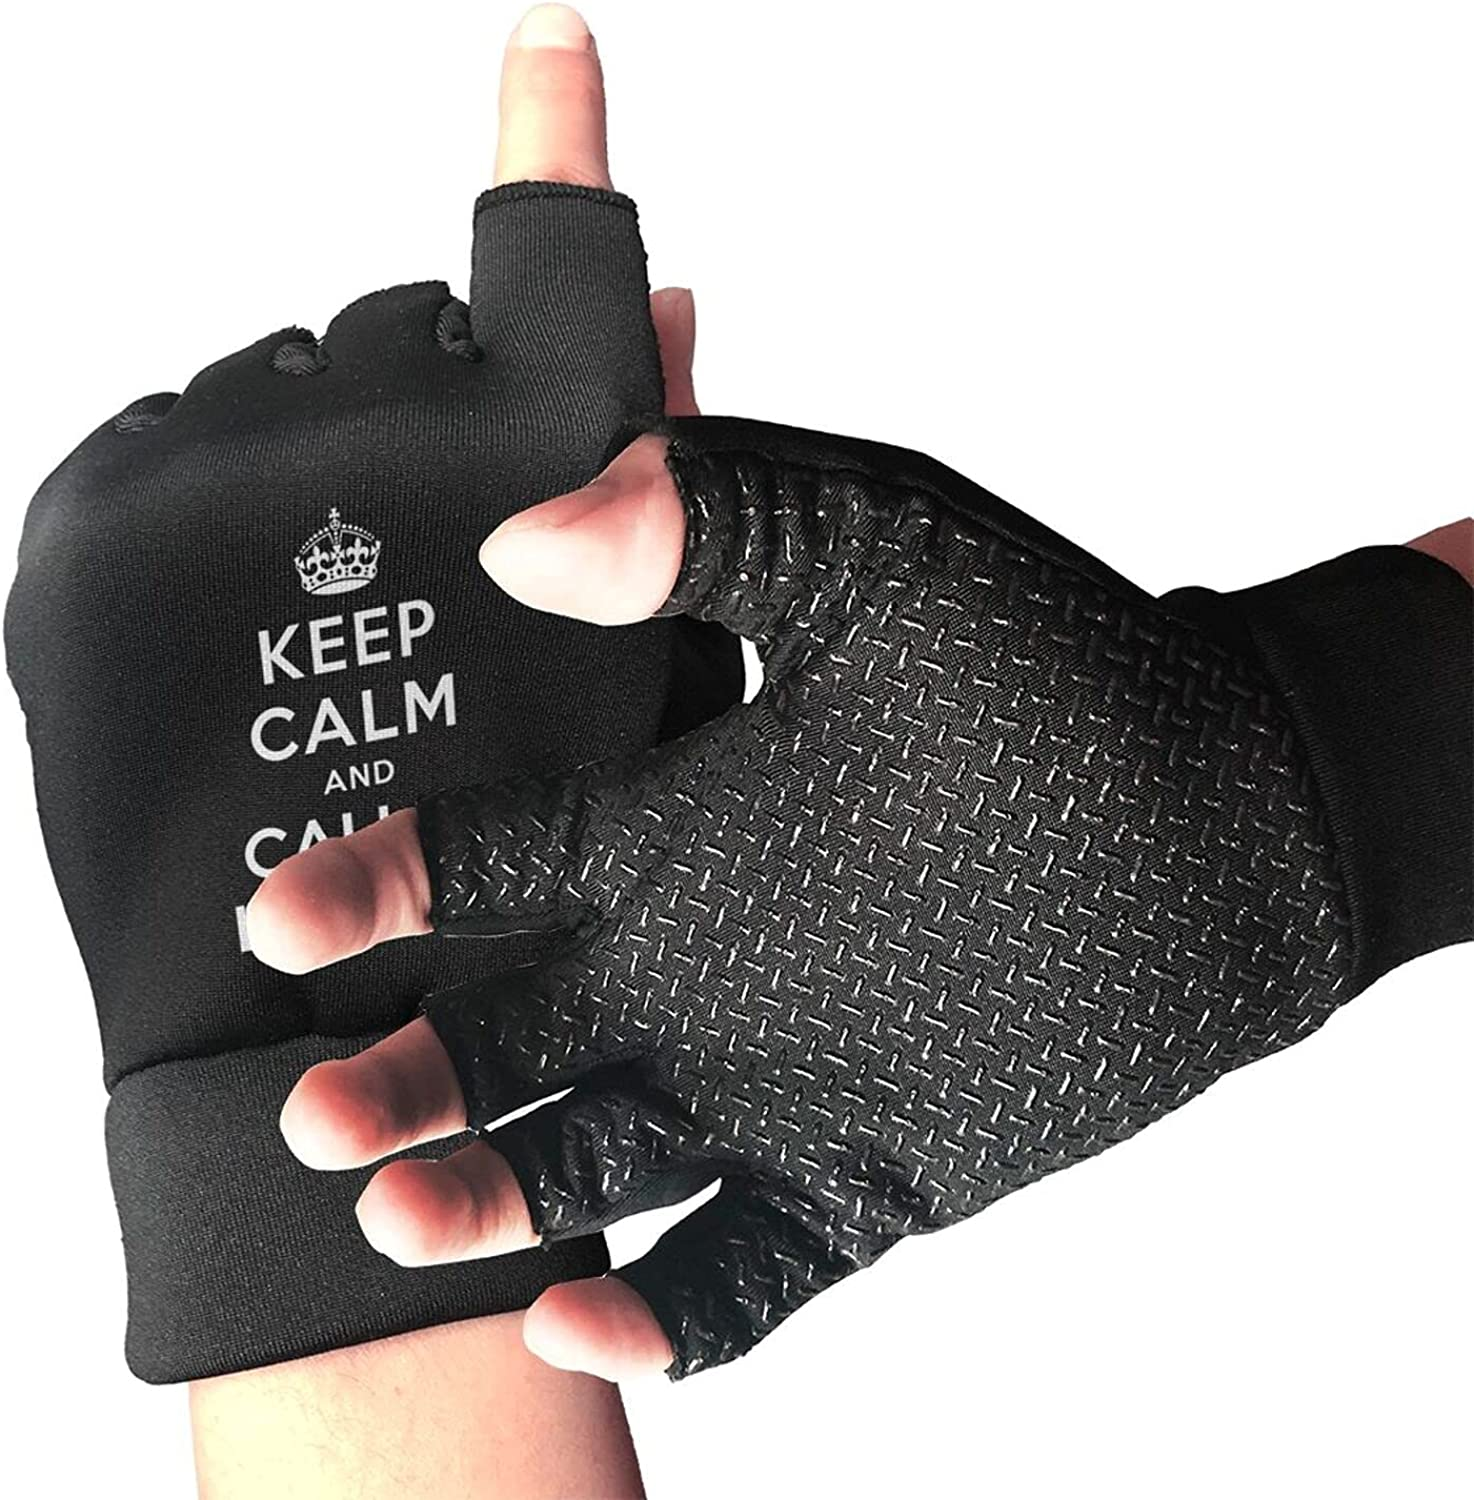 Keep Calm And Call Your Lawyer Non-Slip Working Gloves Breathable Sunblock Fingerless Gloves For Women Men